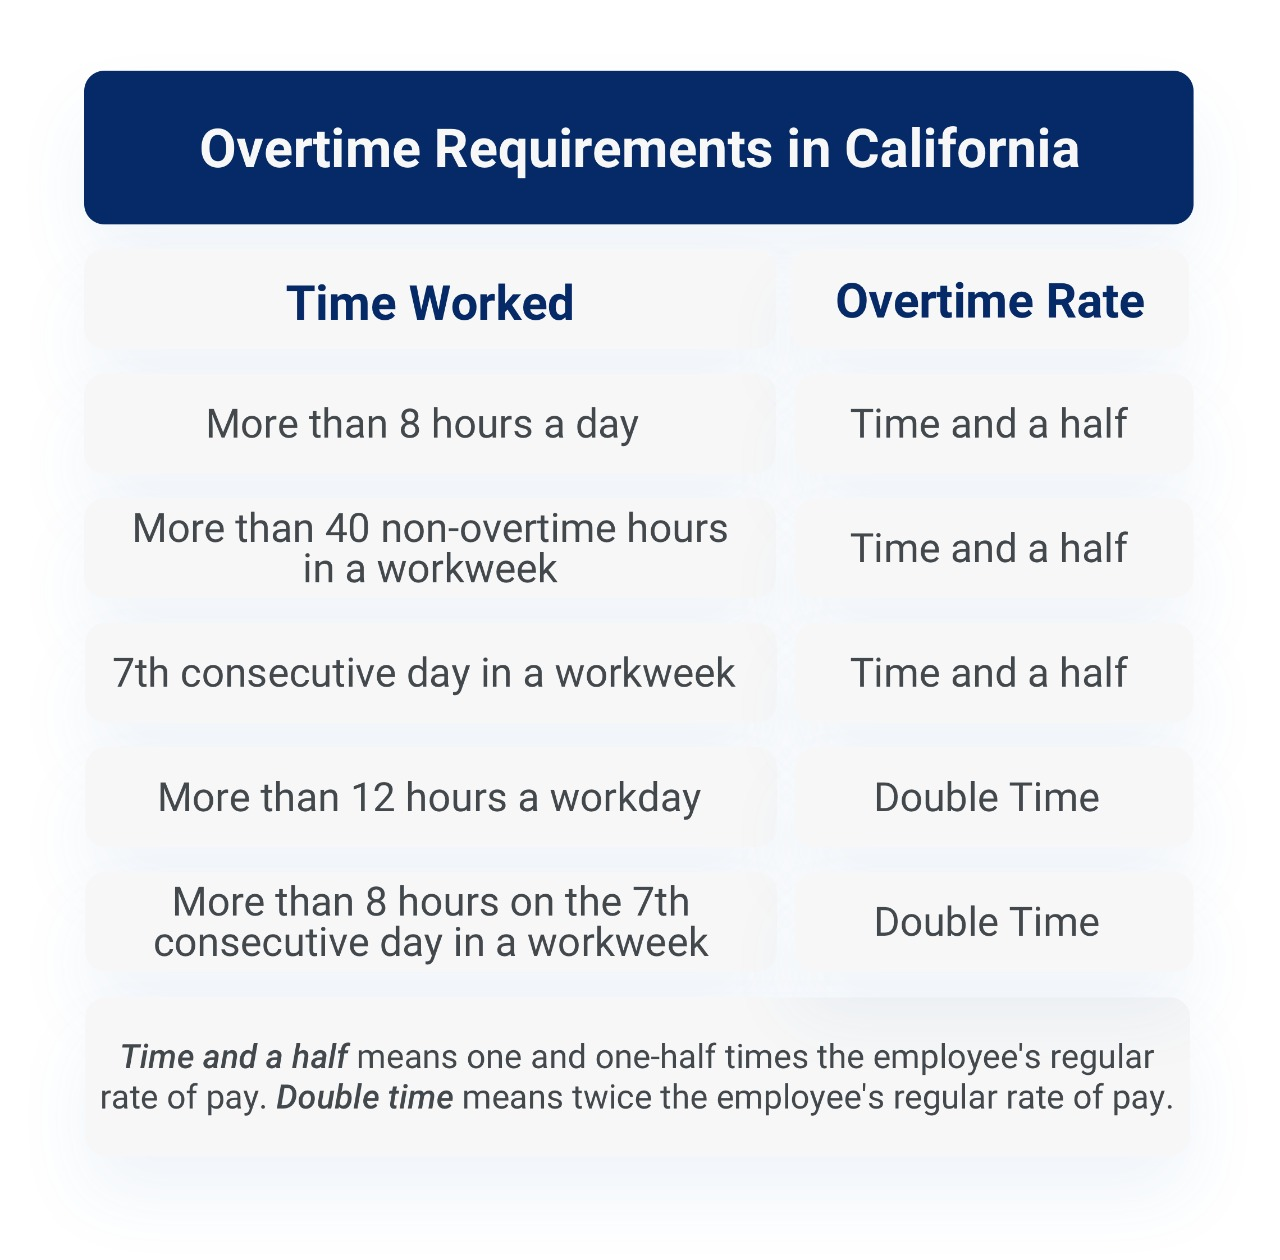 Overtime requirements in California